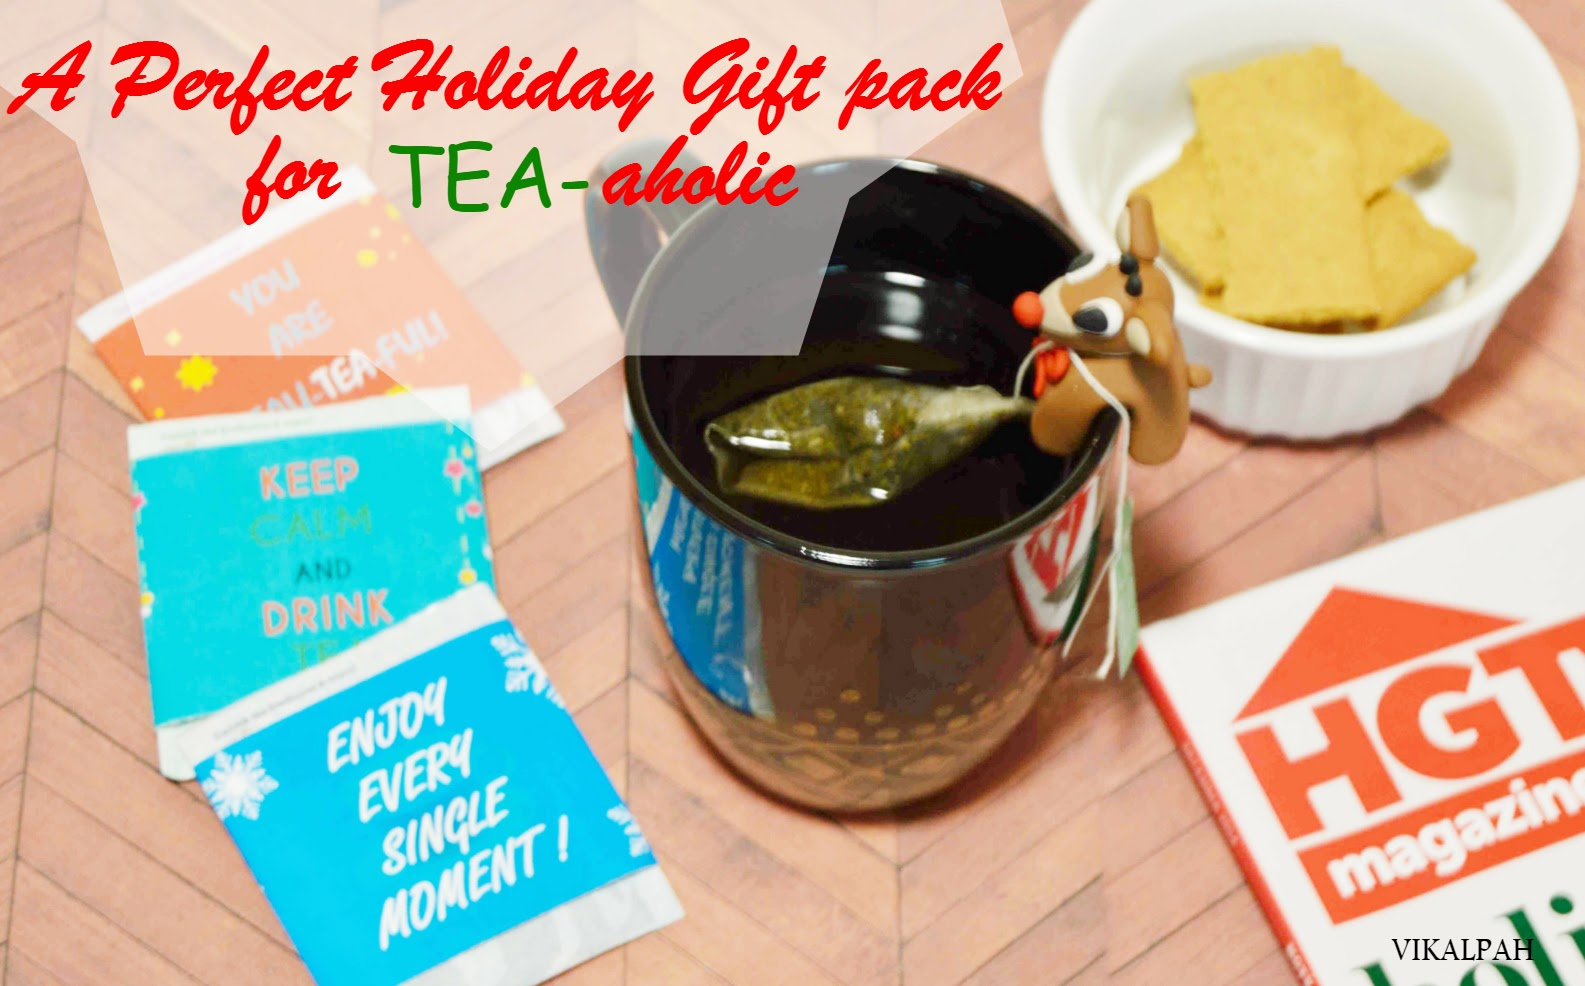 A perfect Holiday gift pack for TEA-aholic